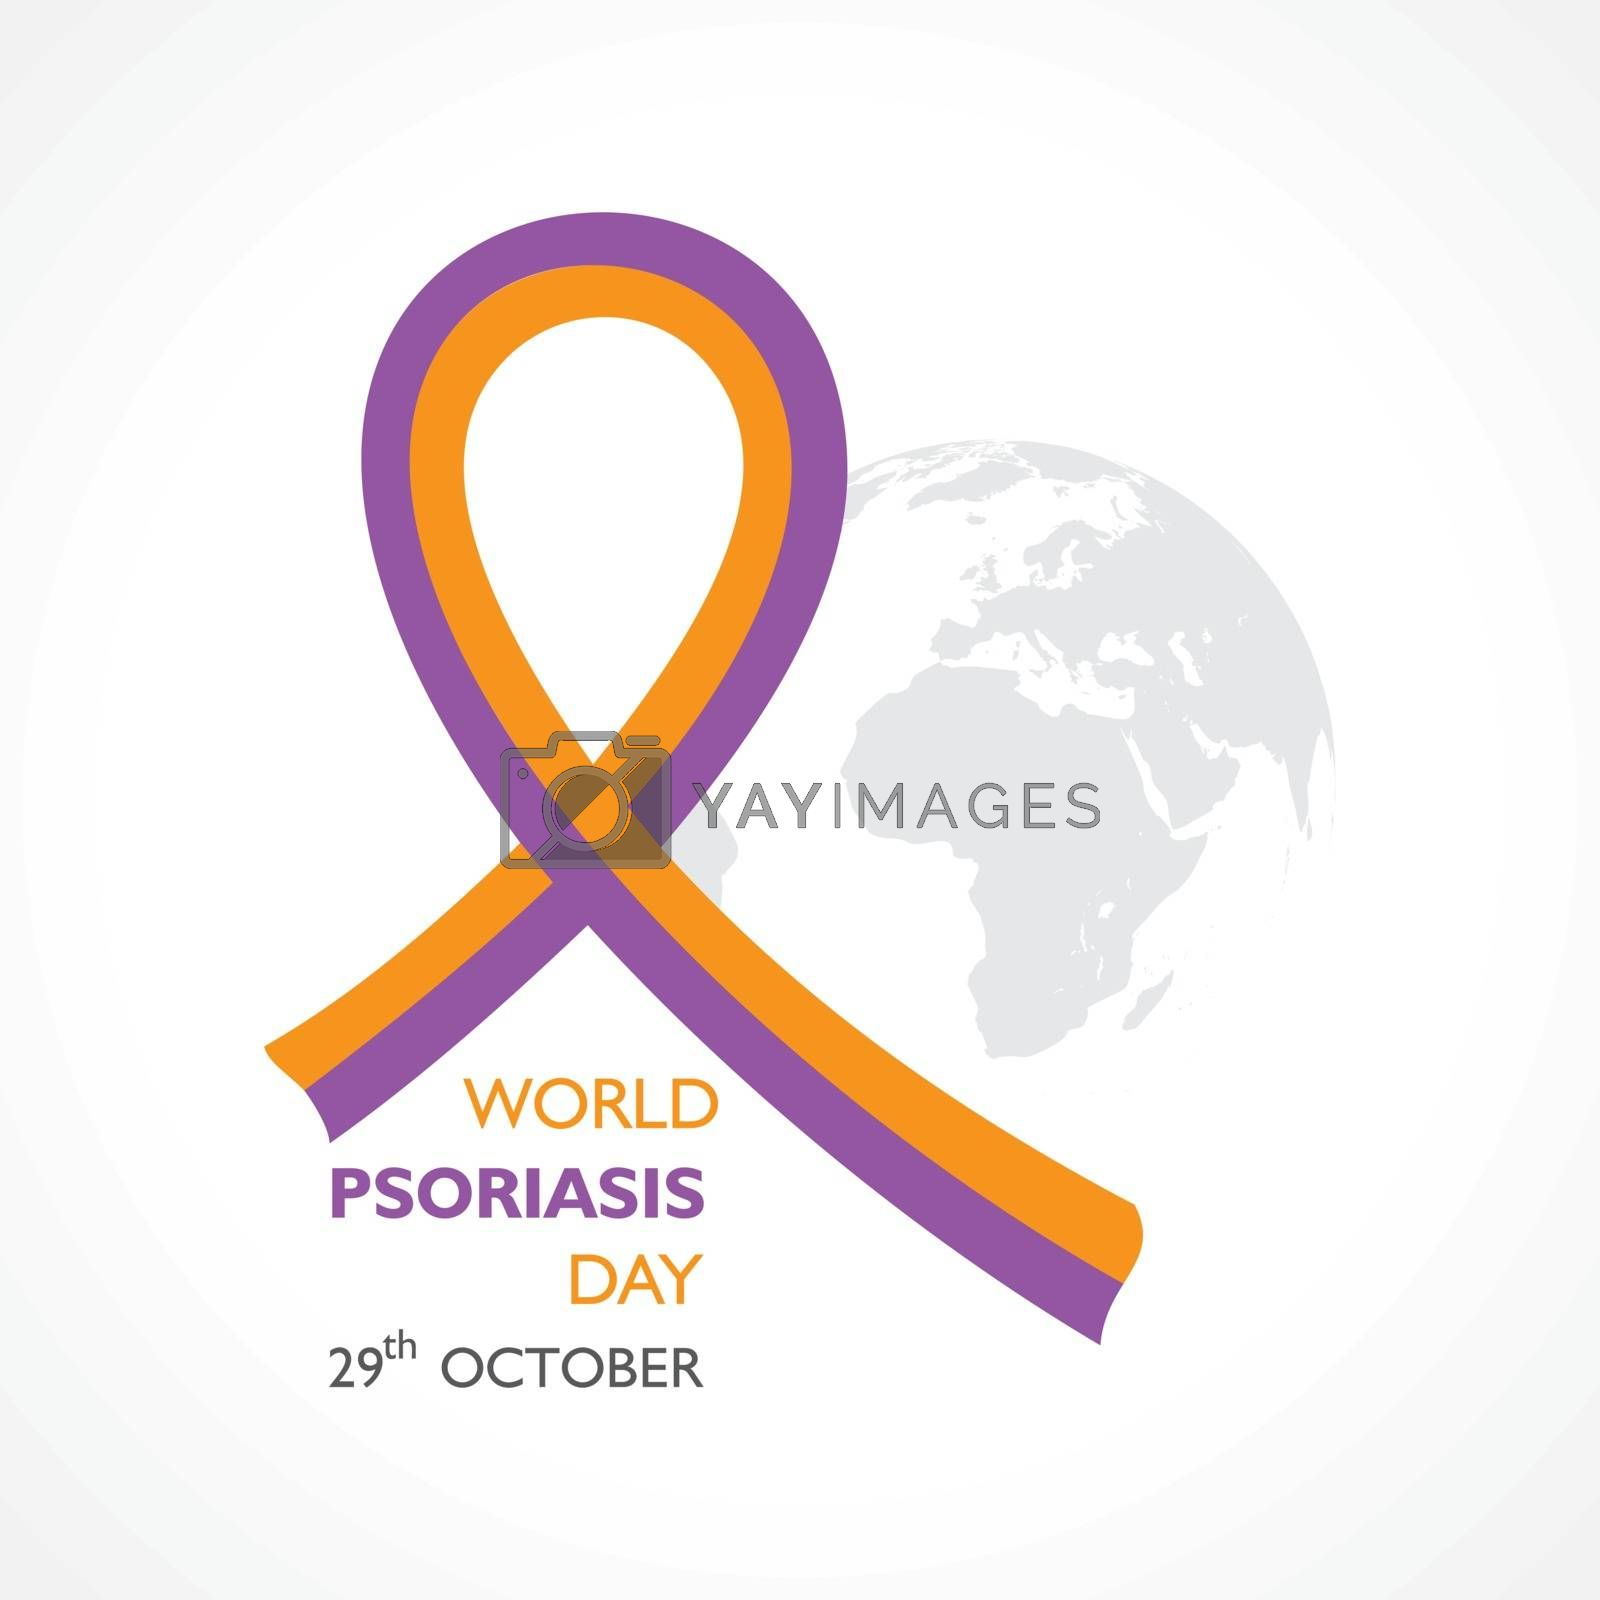 Vector Illustration of World Psoriasis Day observed on 29th October